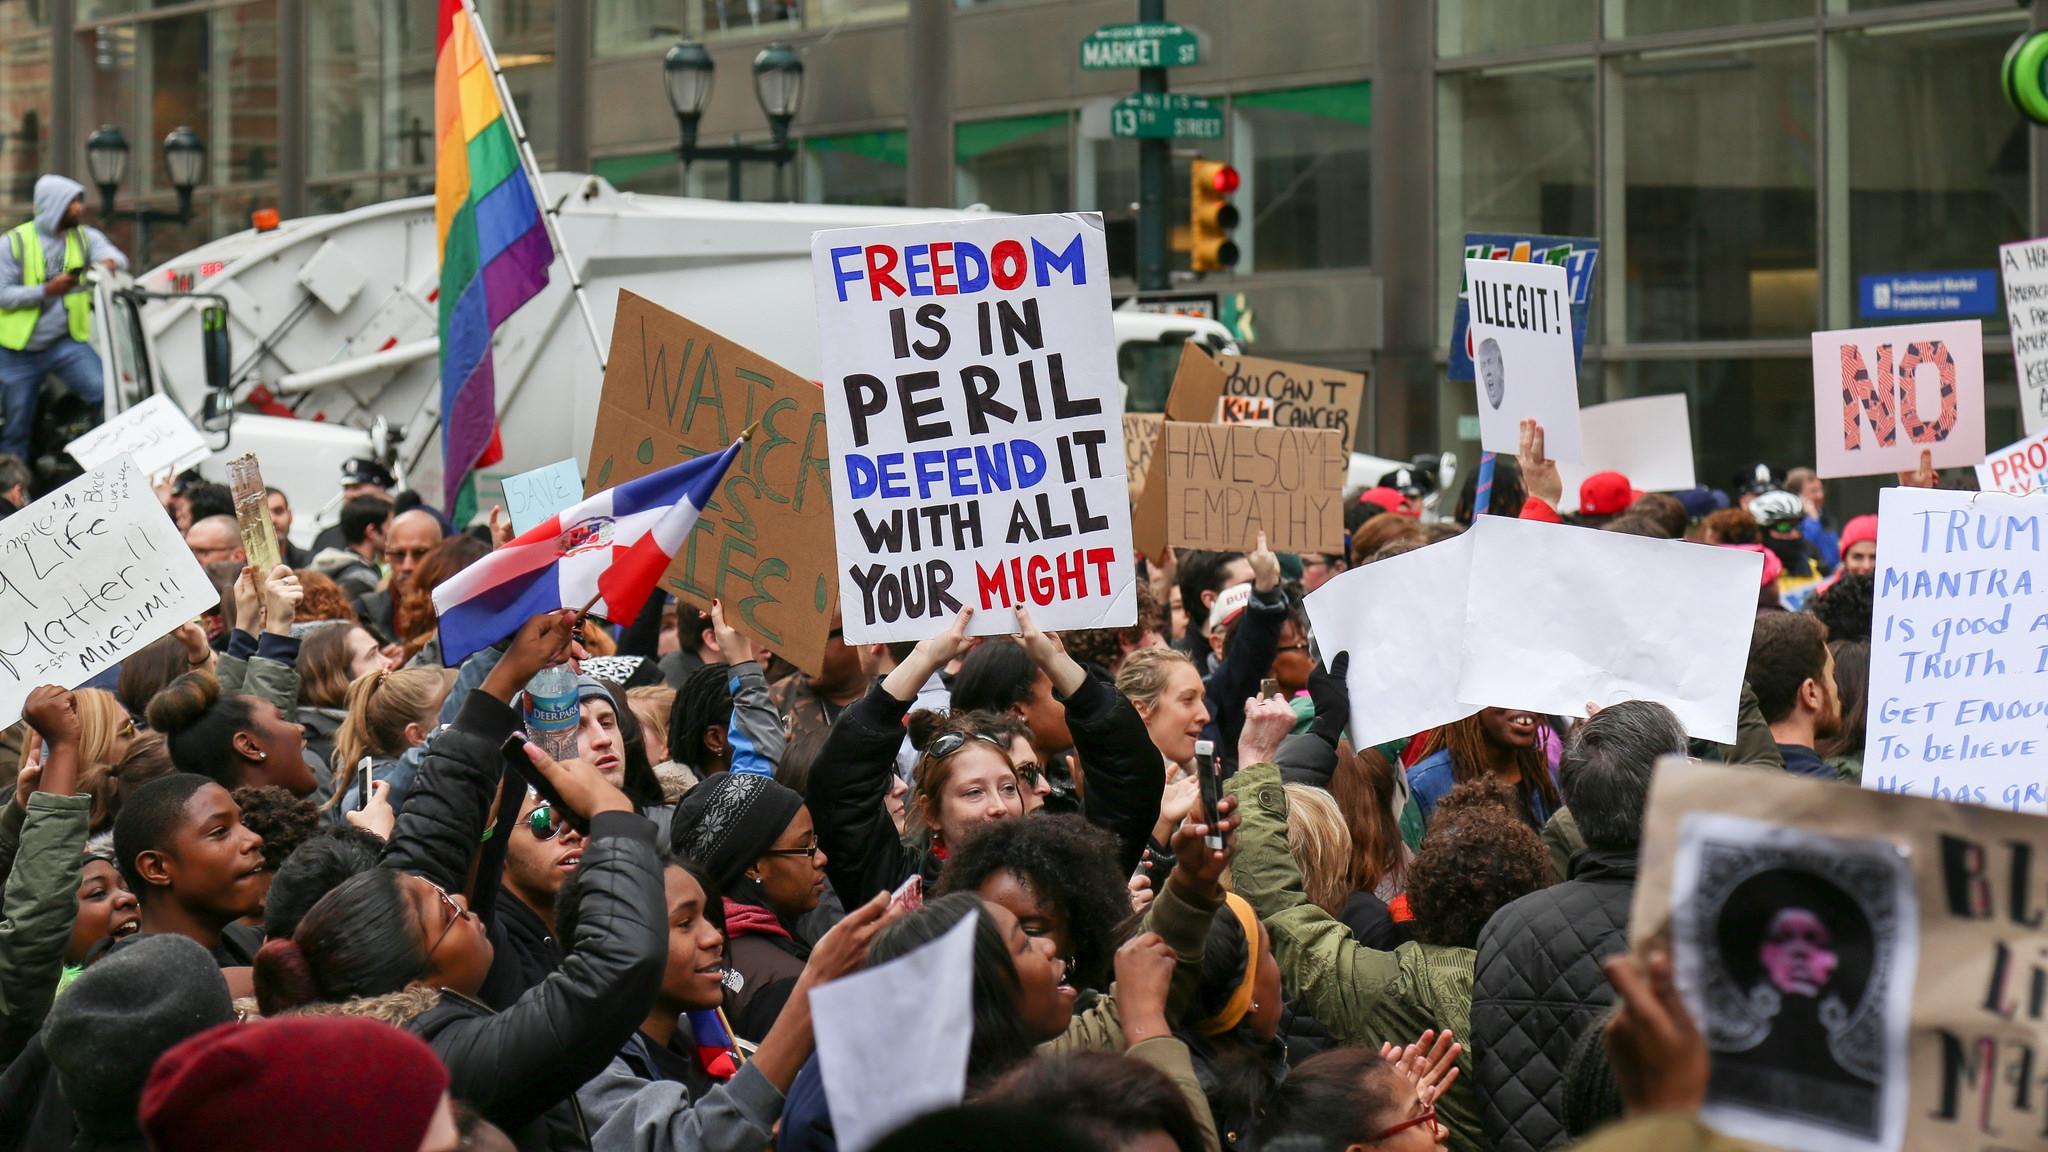 Protests sprouted up across the nation in response to President Trump's Executive Order banning Travel from seven predominantly Muslim countries.